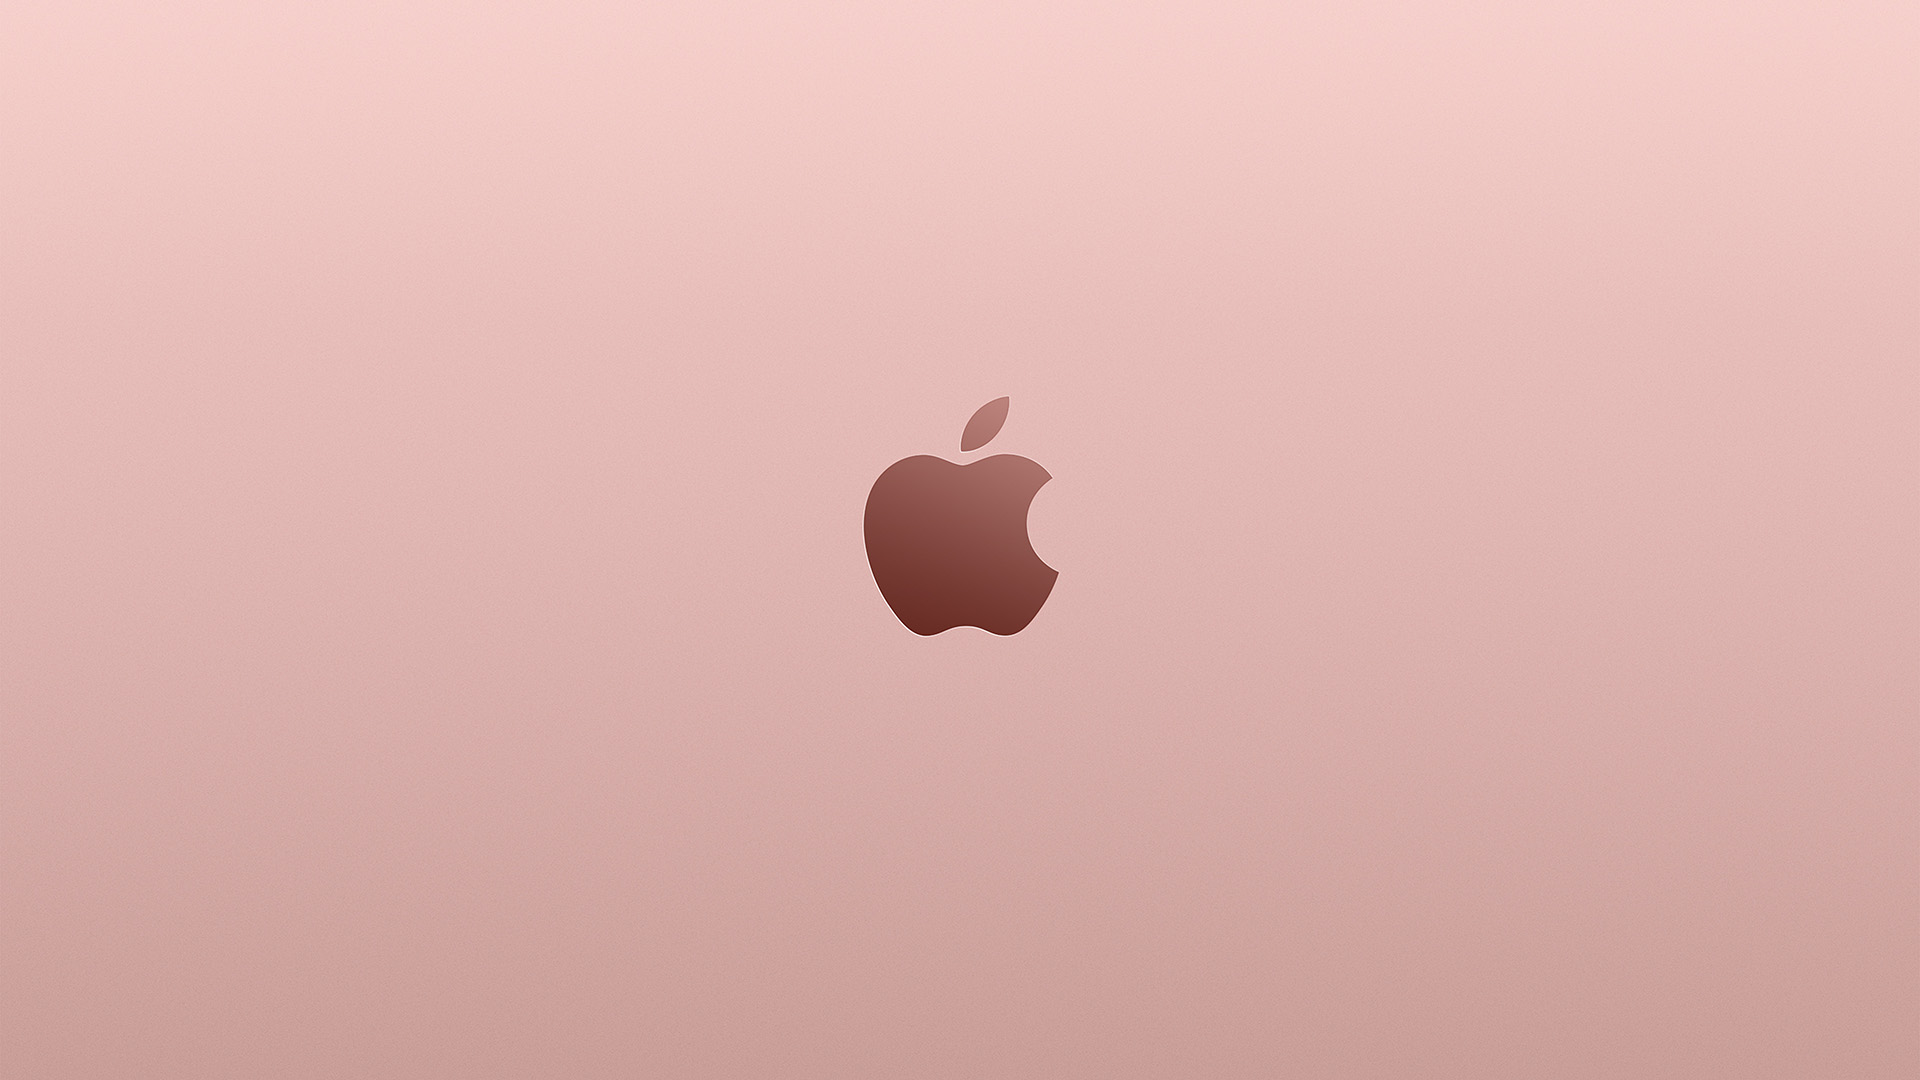 Rose Gold Laptop Aesthetic Desktop Wallpaper